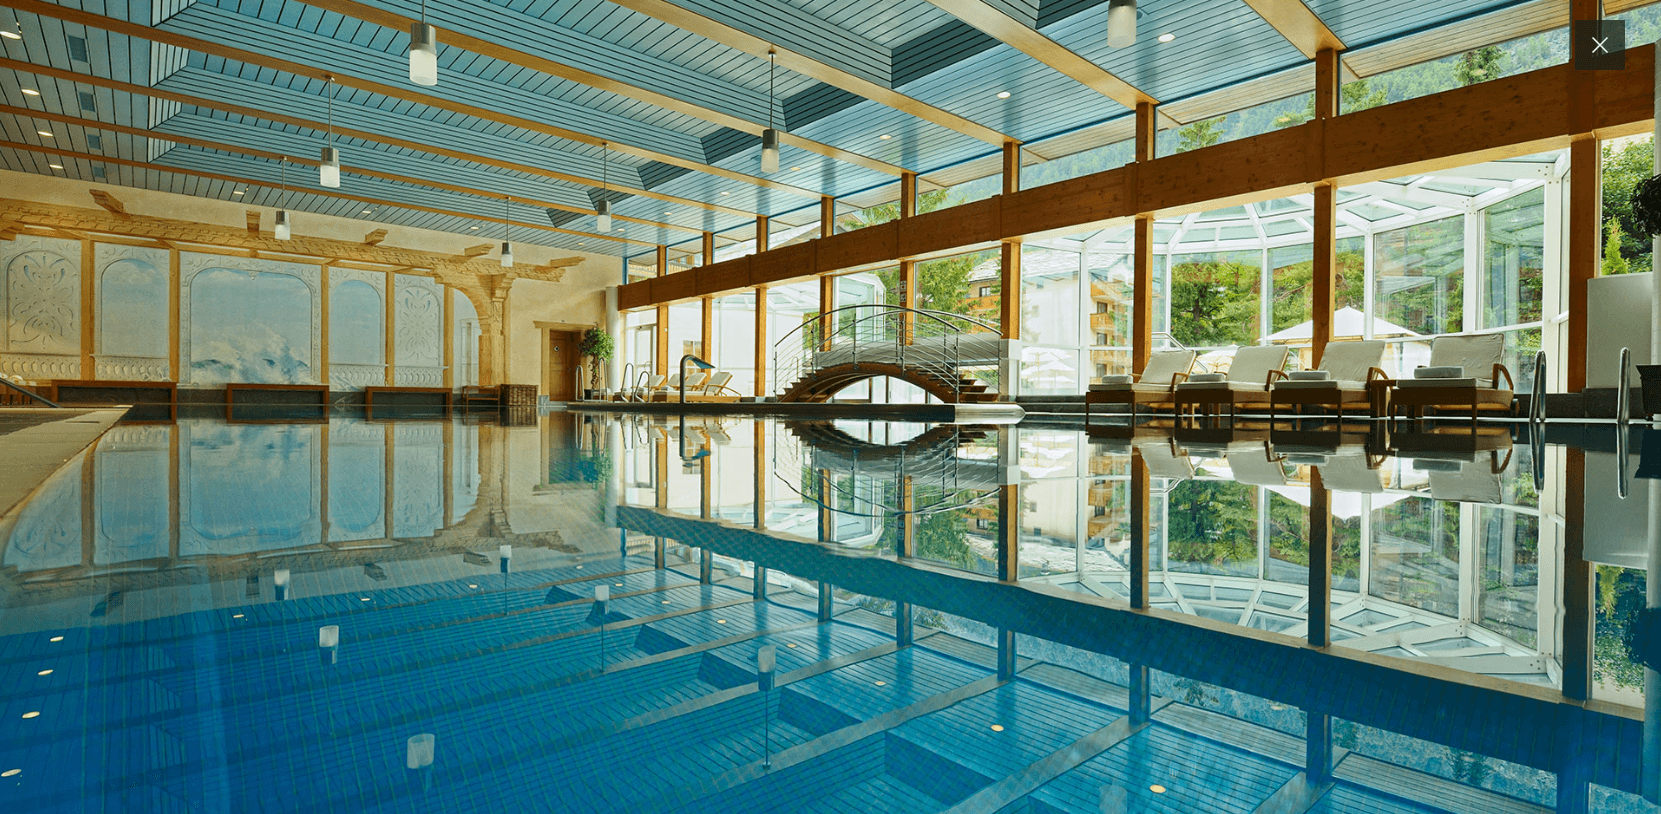 Indoor-outdoor pool at Hotel Mont Cervin Palace in Zermatt, Switzerland ~ Best Indoor Hotel Pools for Kids